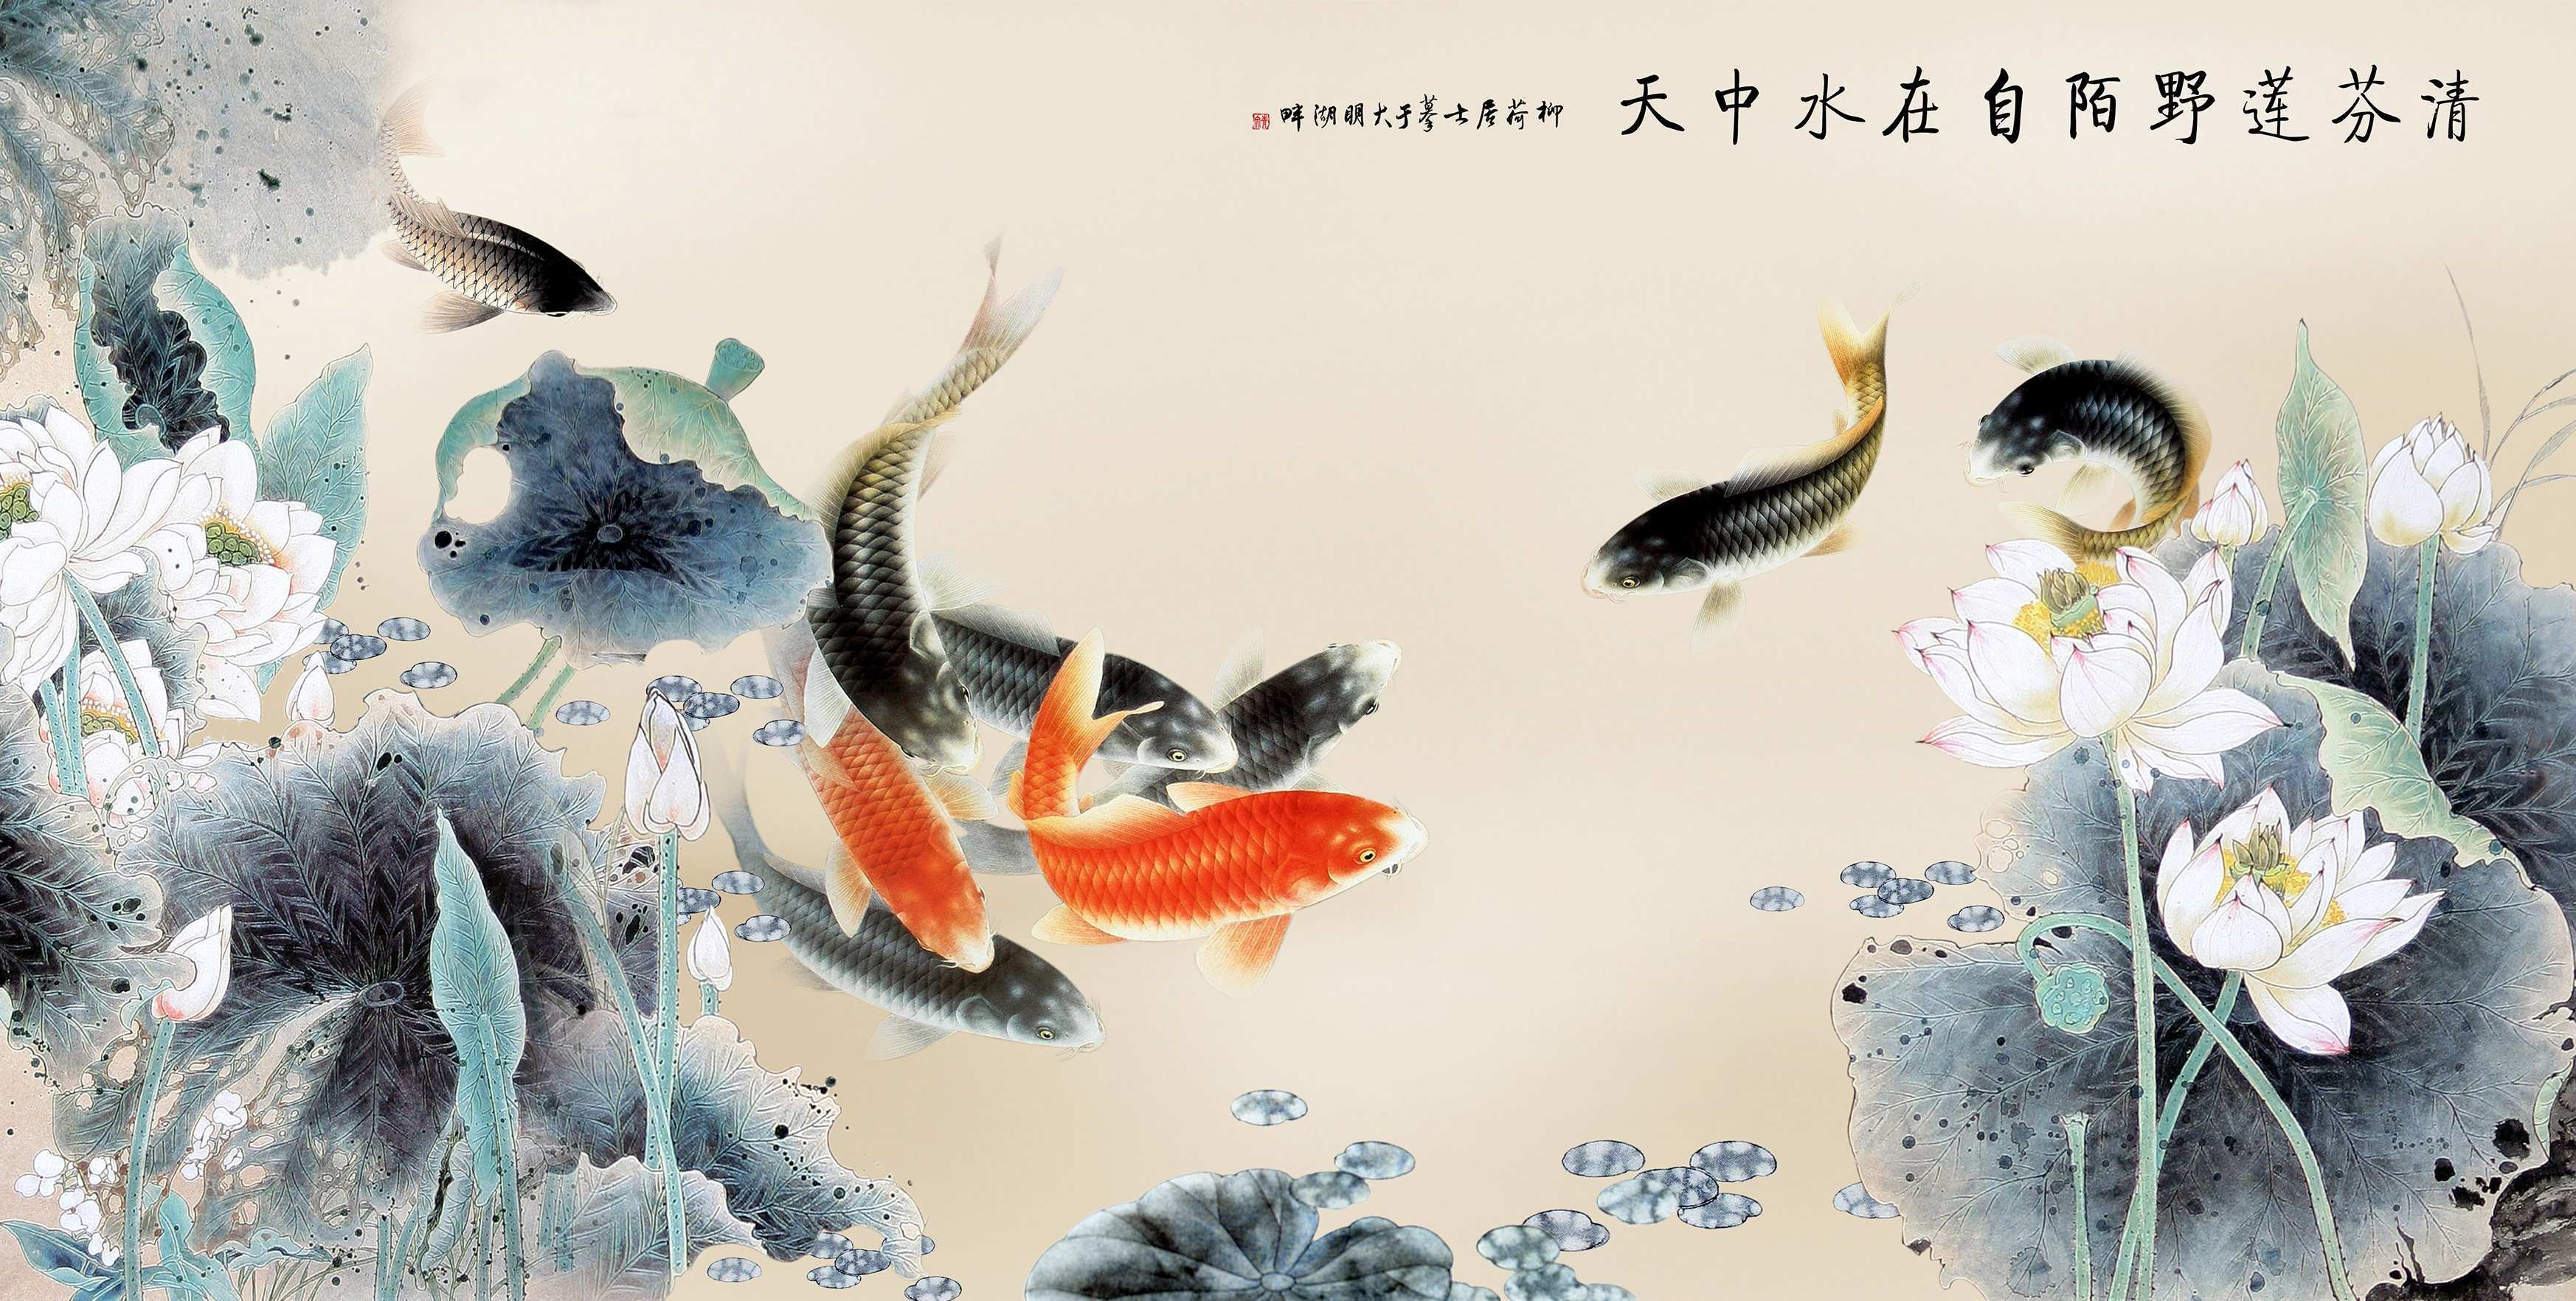 Japanese Koi Fish Wallpaper Wall Giftwatches Co